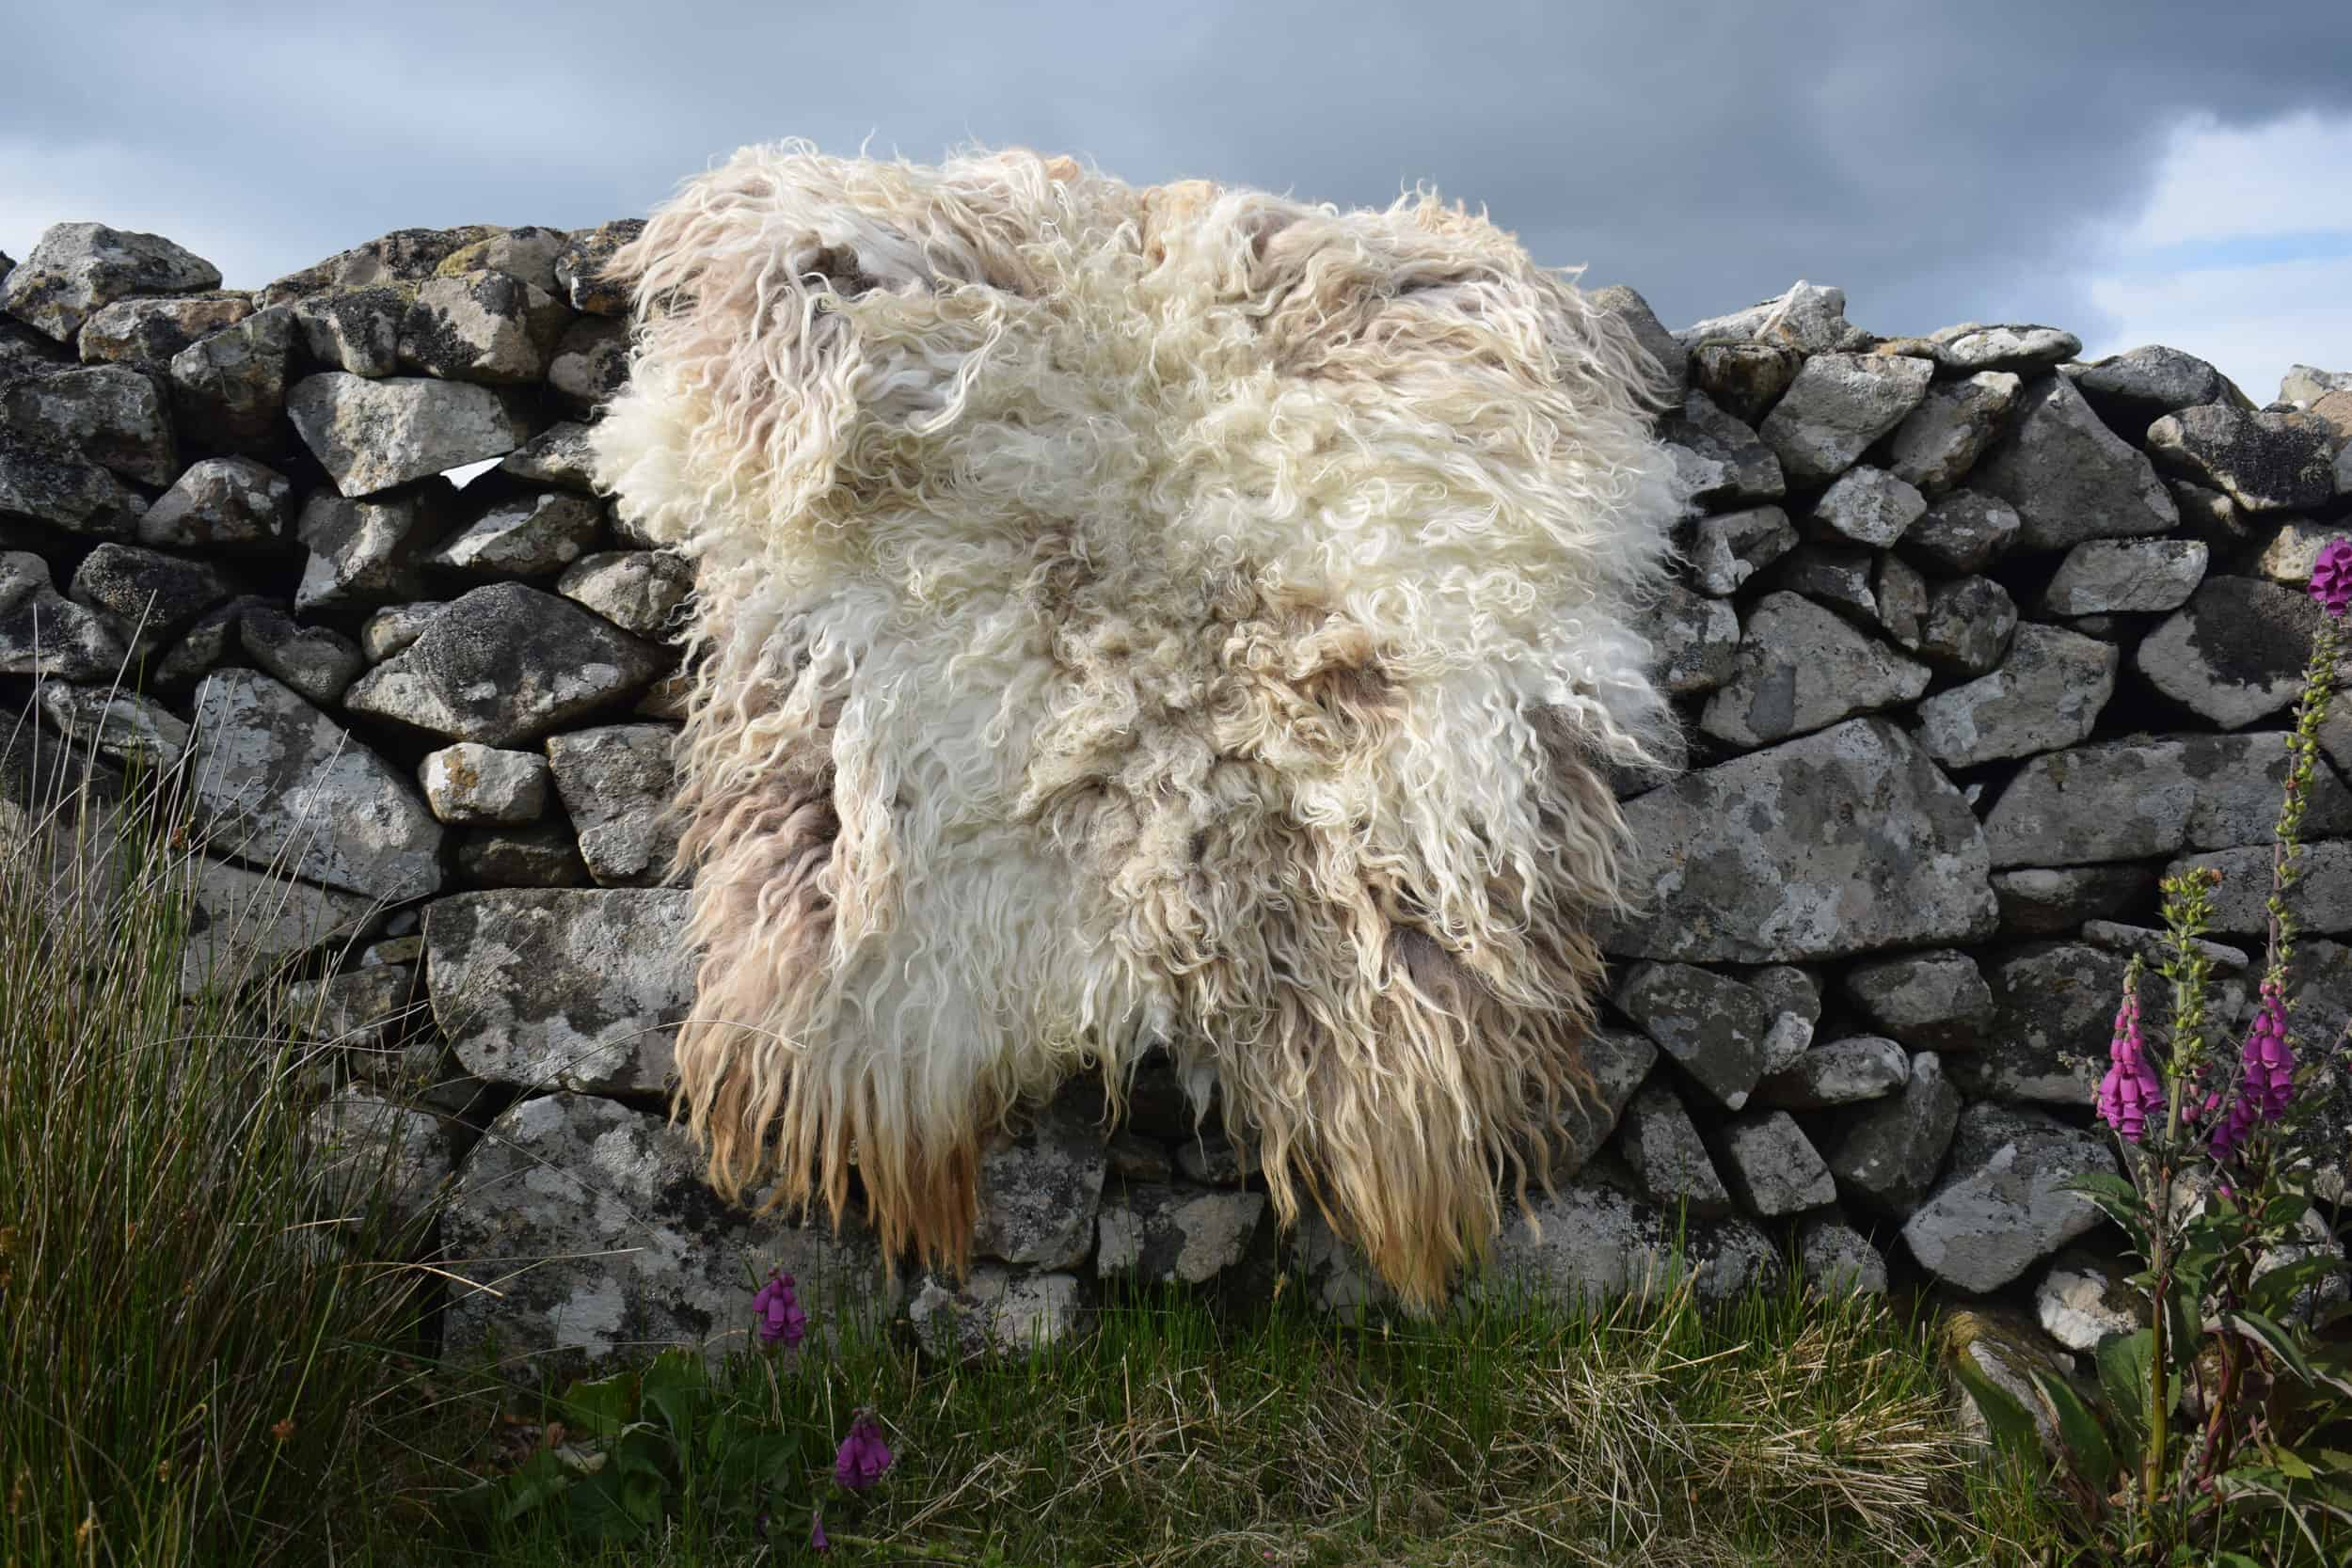 Felted fleece rug natural vegetarian sheepskin dandelion living rug natural sheep friendly ethical wool sustainable